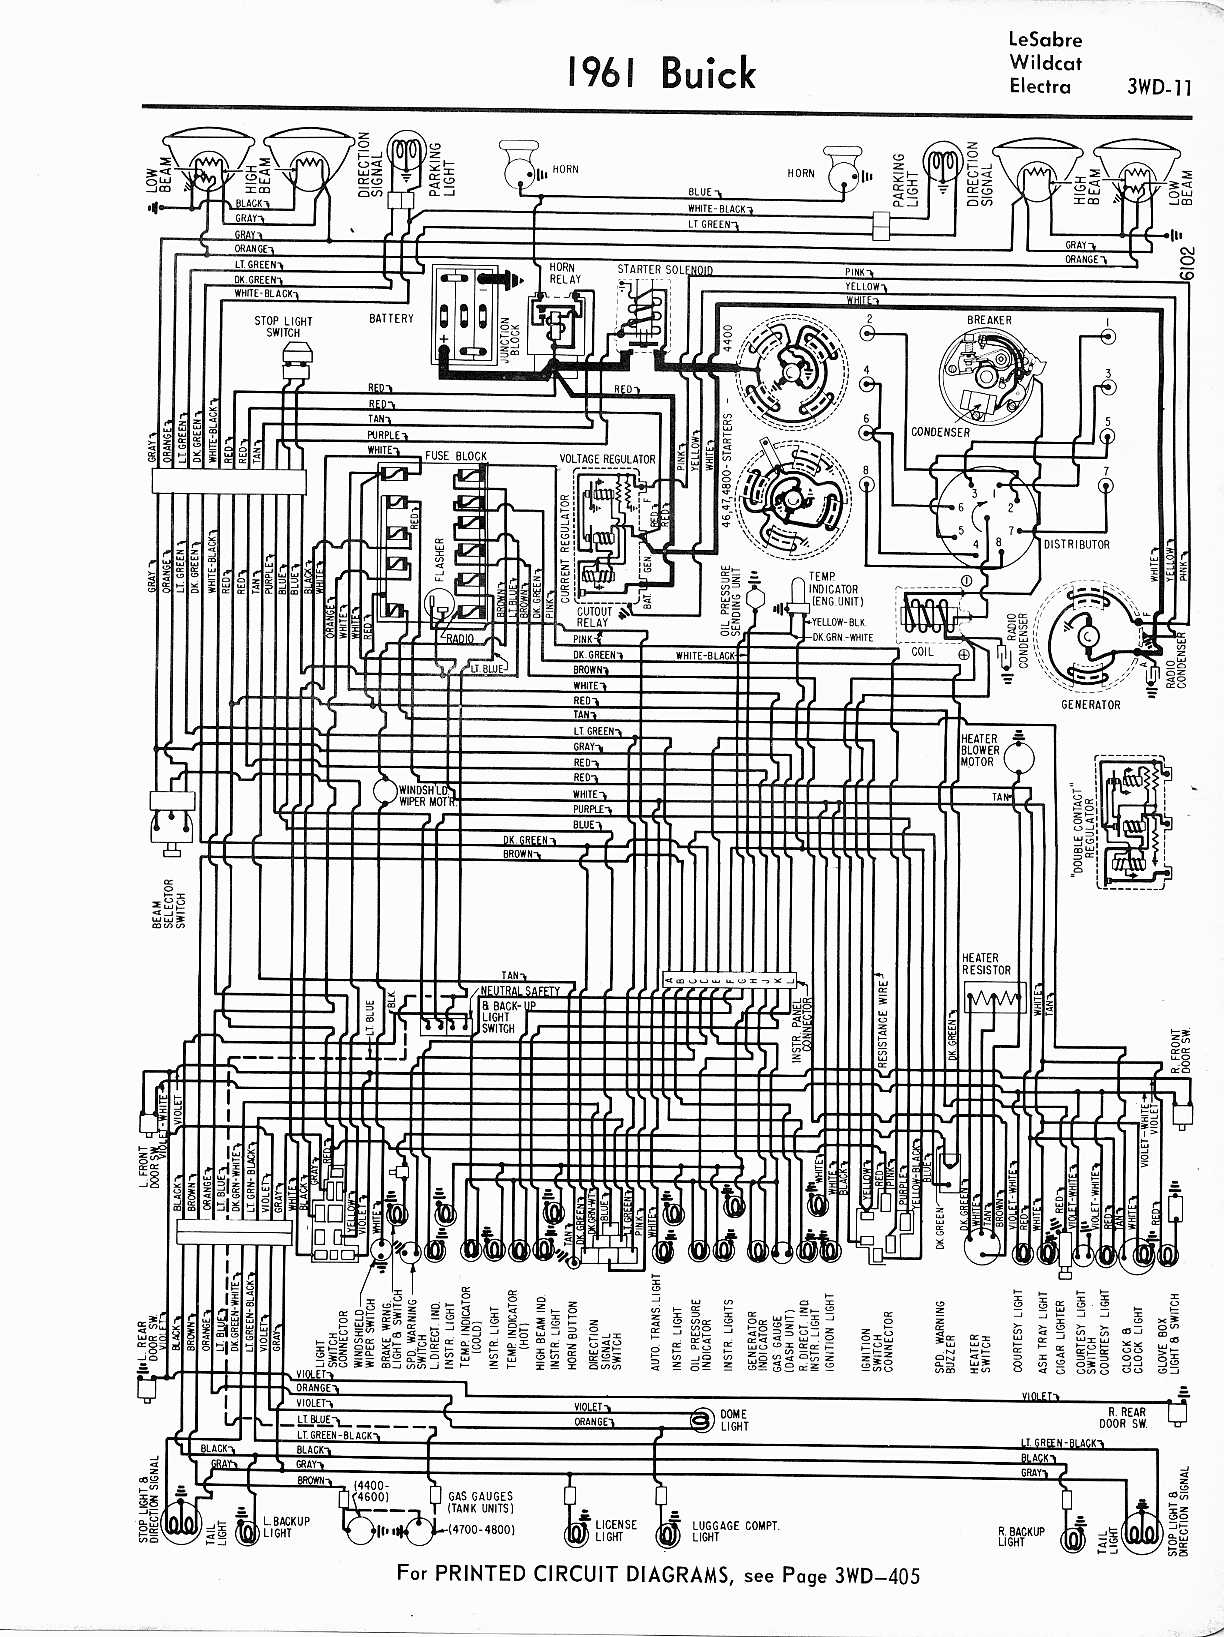 1970 buick skylark wiring diagram wiring diagram data schema Buick Headlight Wiring Diagram buick wiring diagrams 1957 1965 1961 lesabre, wildcat, electra